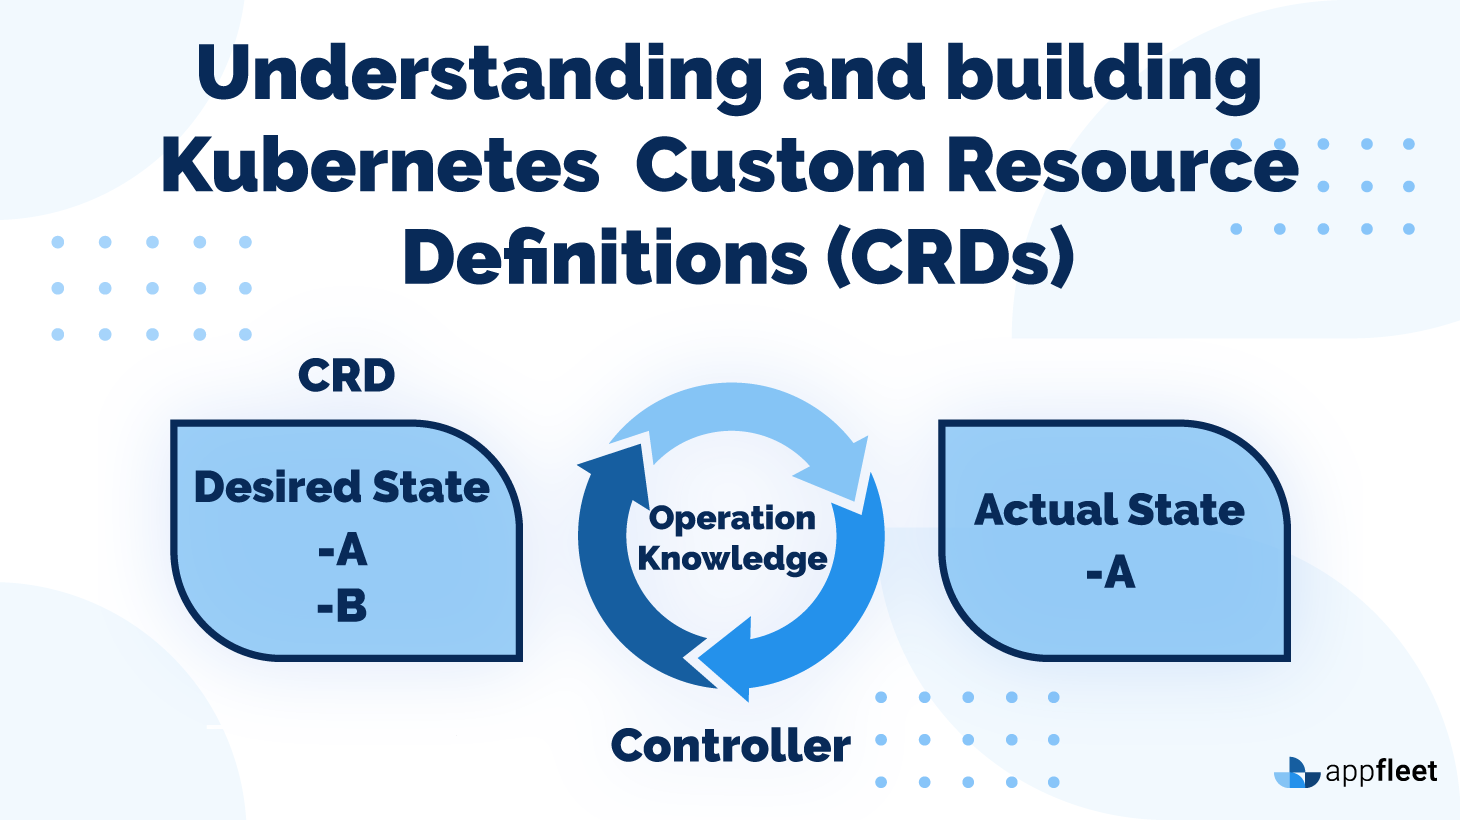 Understanding and building Kubernetes Custom Resource Definitions (CRDs)